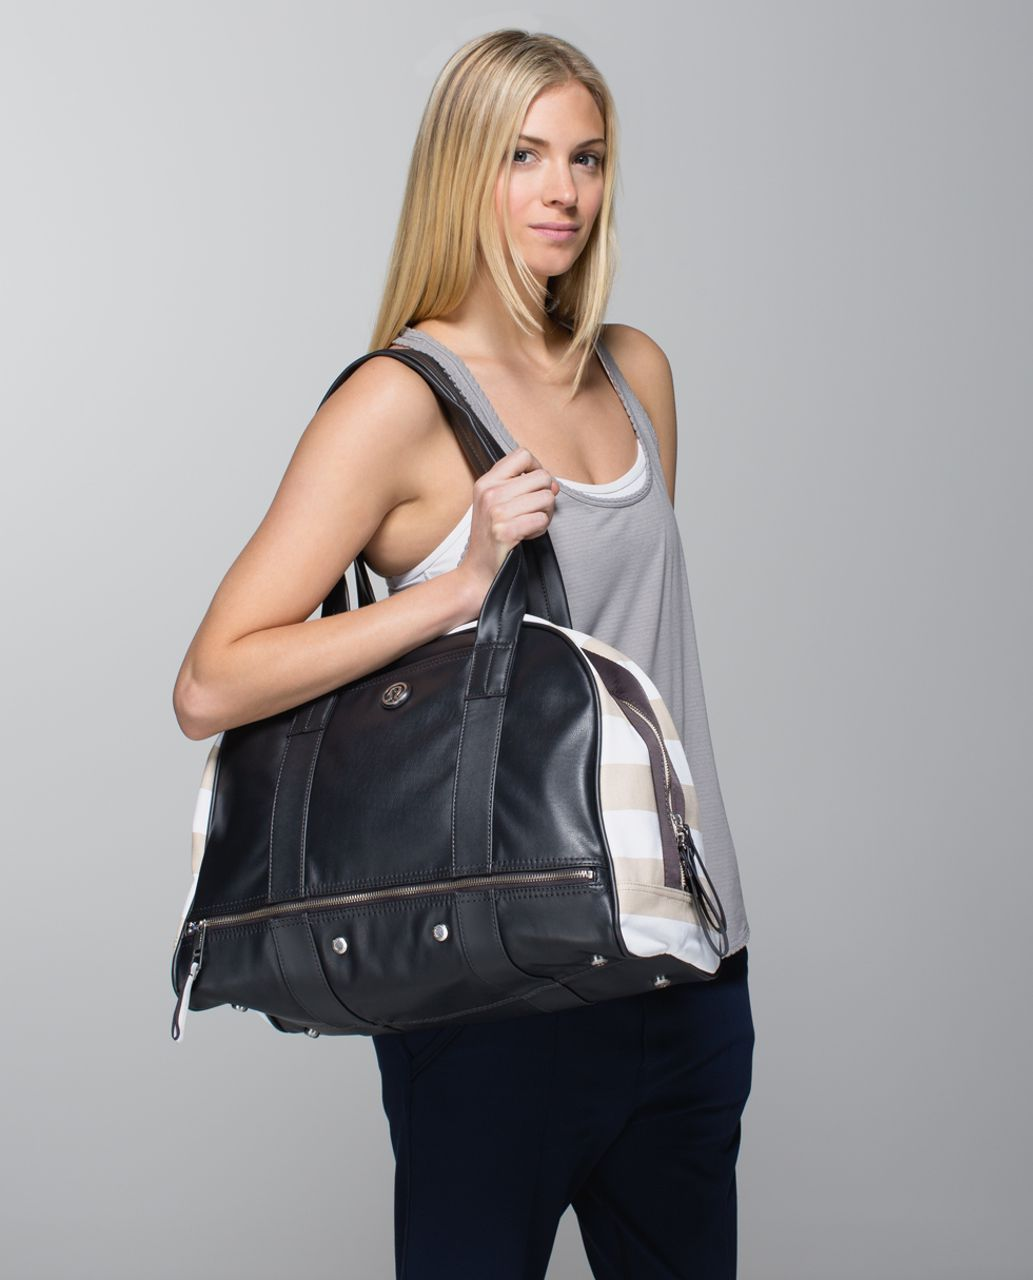 e5a92255672 Original Price: $118. Color: beach stripe printed cashew white / soot. Why  we made this Some days we're constantly on the go, and we need a bag that  can ...